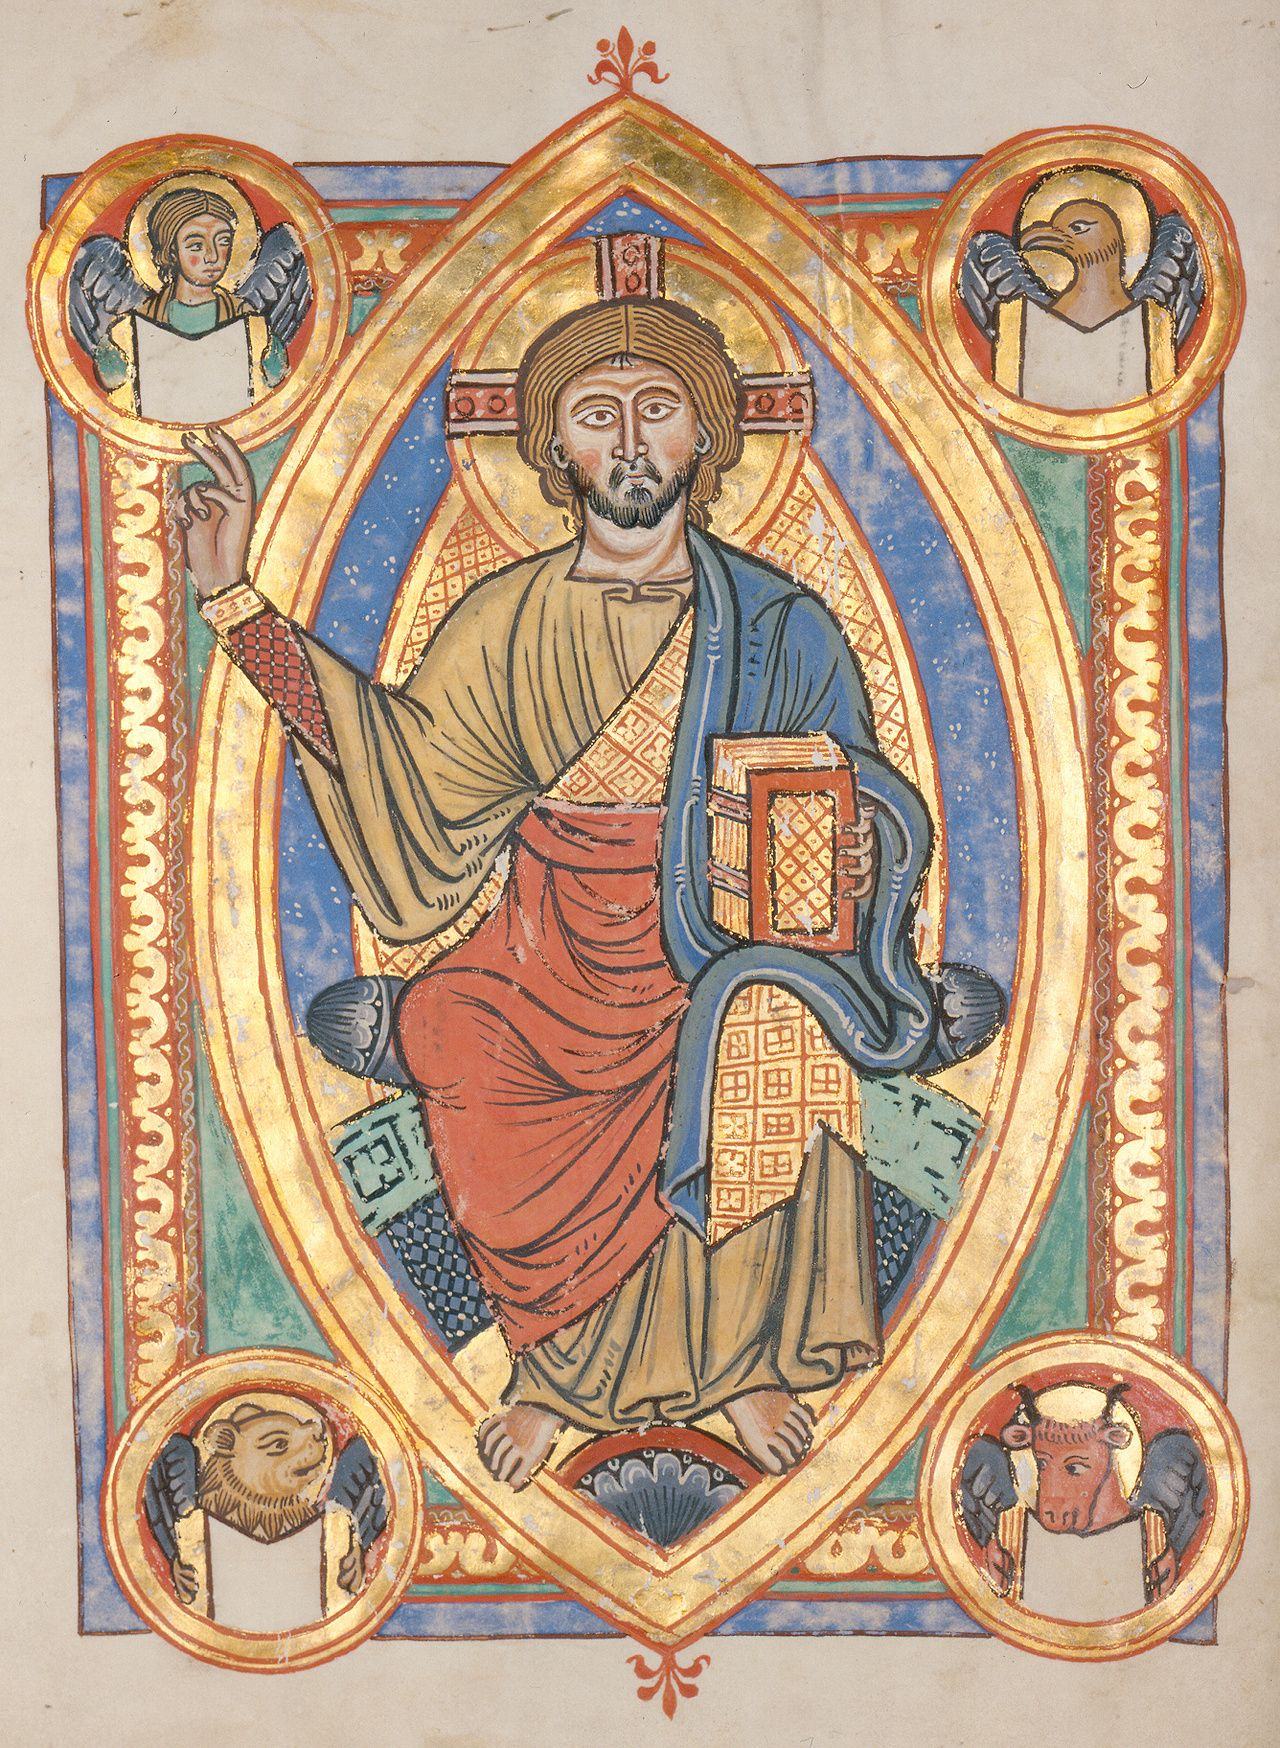 Lionofchaeronea Christ Enthroned Surrounded By The Animal Symbols